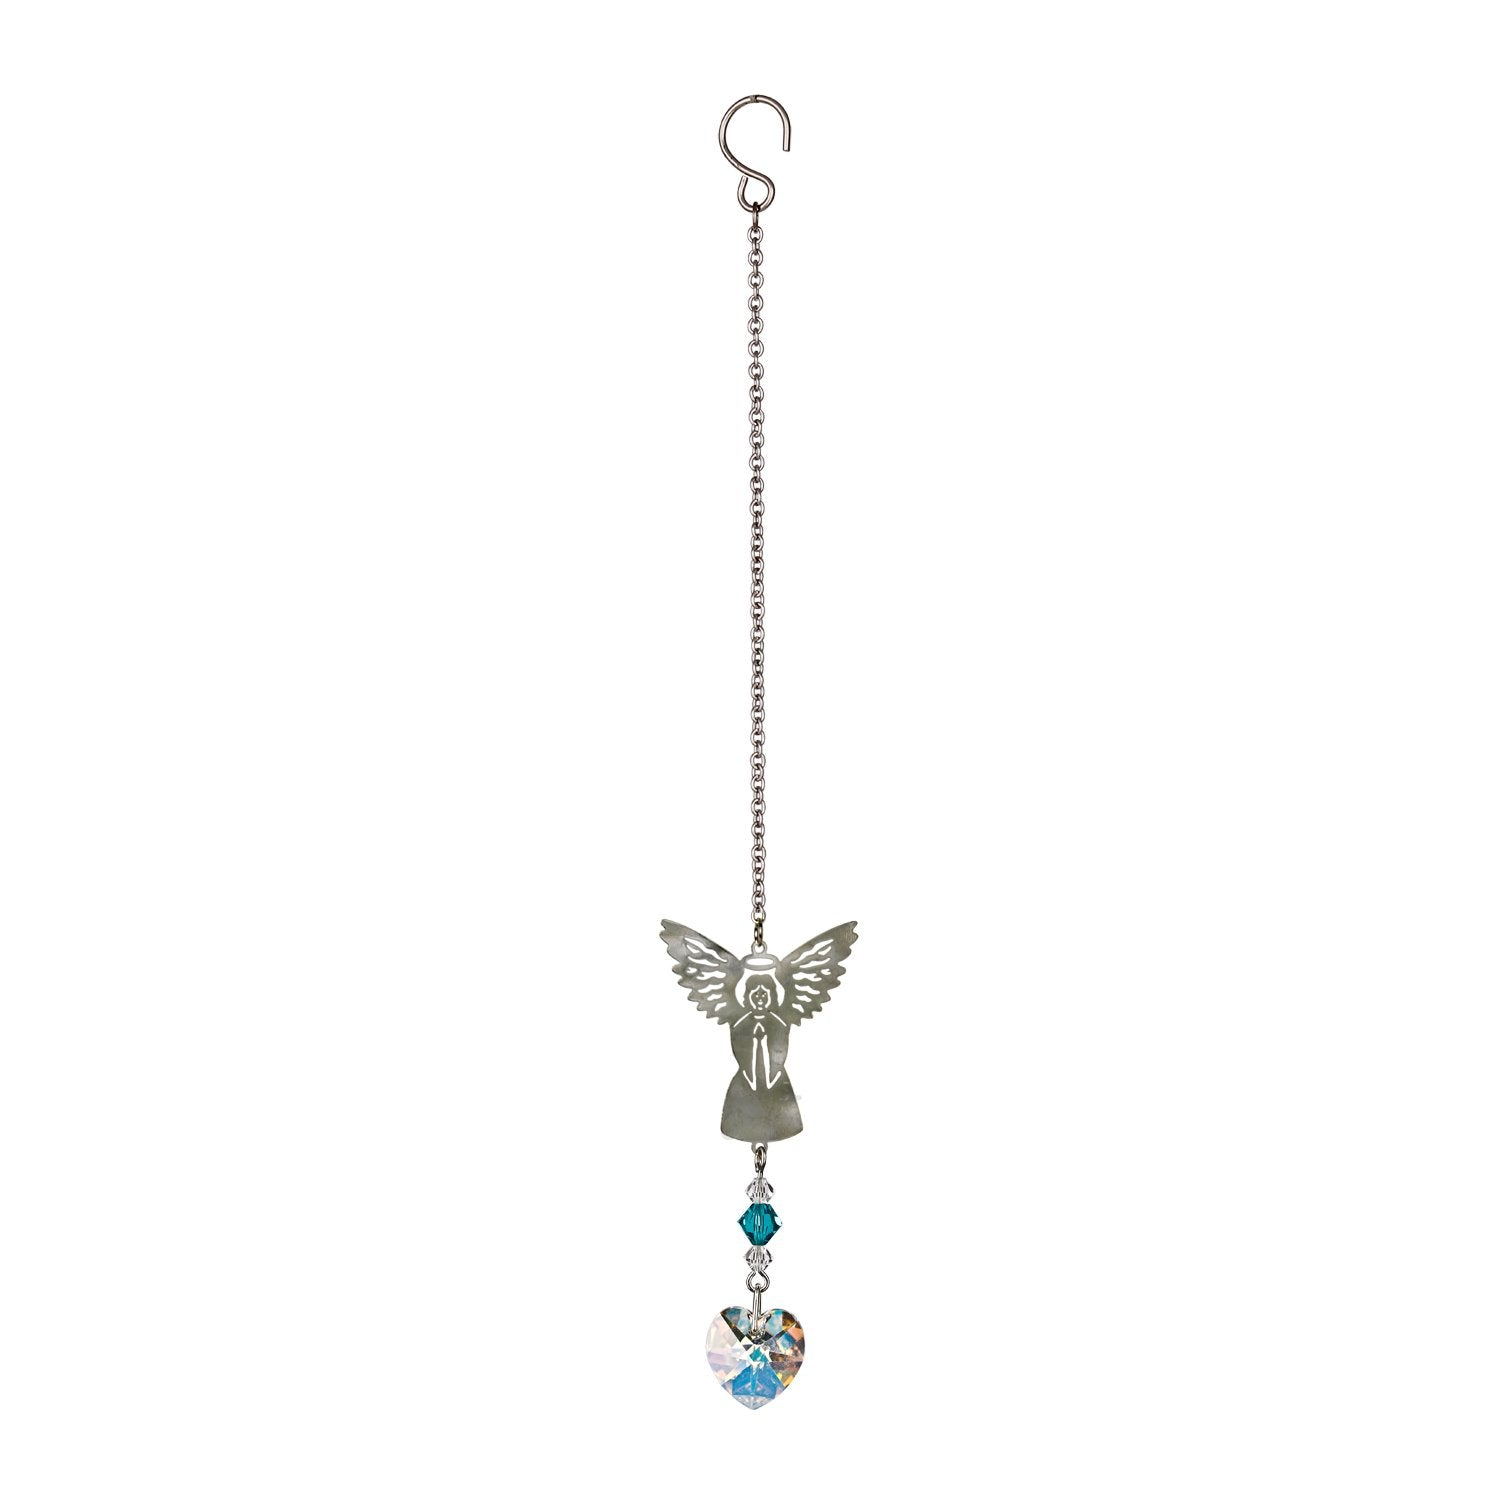 Birthstone Angel Crystal Suncatcher - December full product image